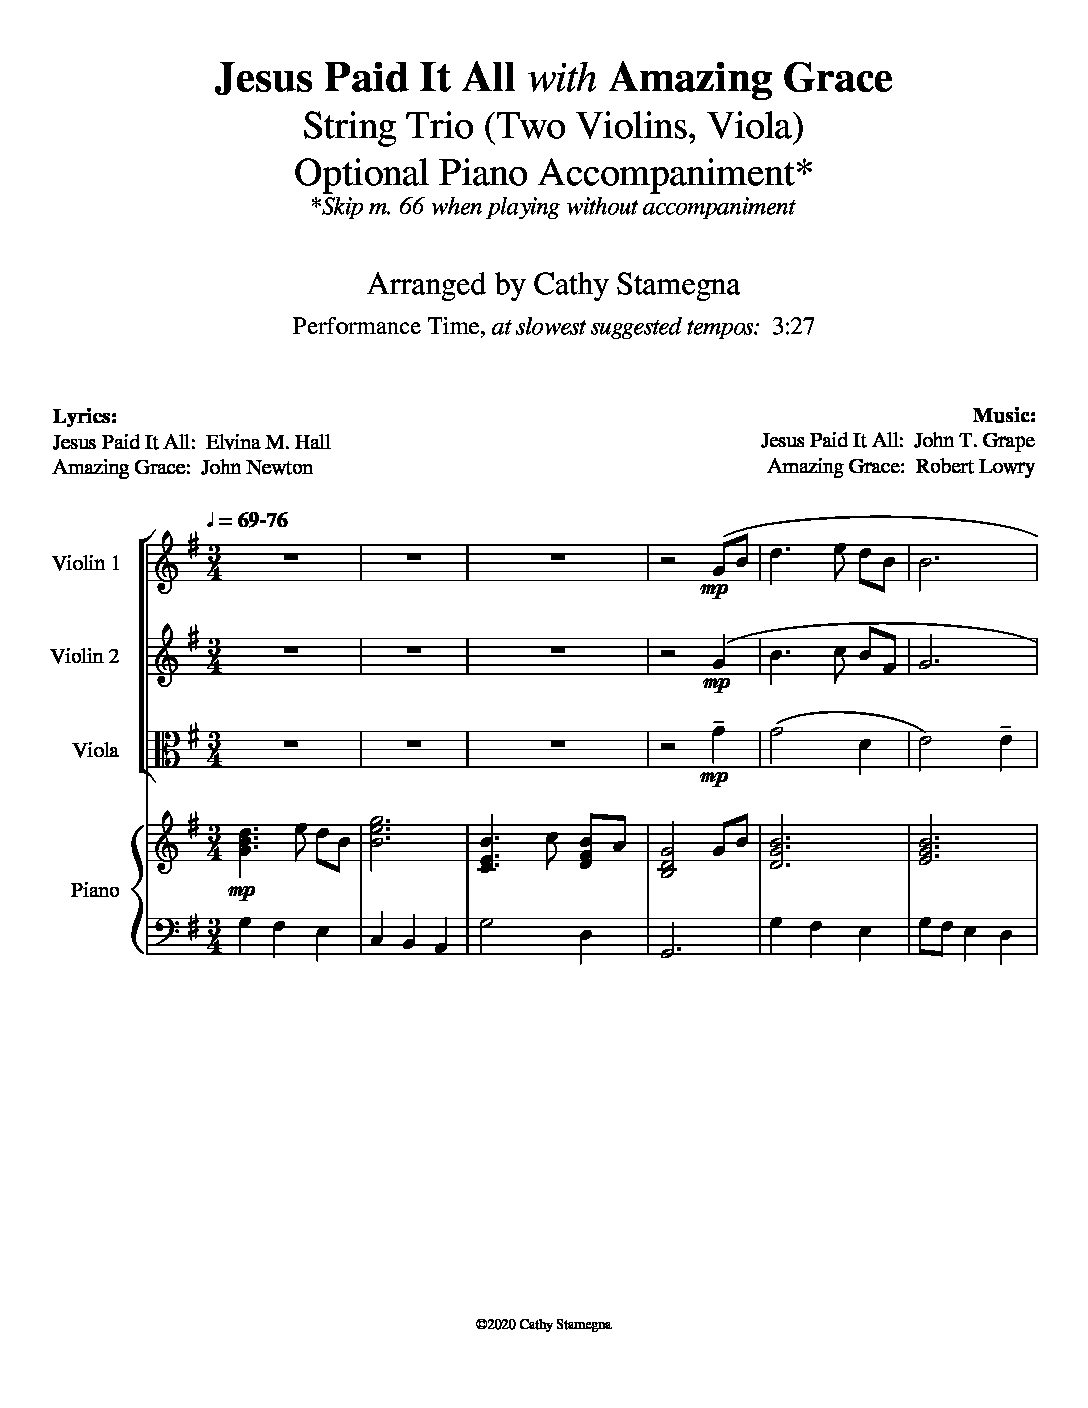 """Jesus Paid It All (with """"Amazing Grace"""") – String Trio, Optional Piano Accompaniment"""